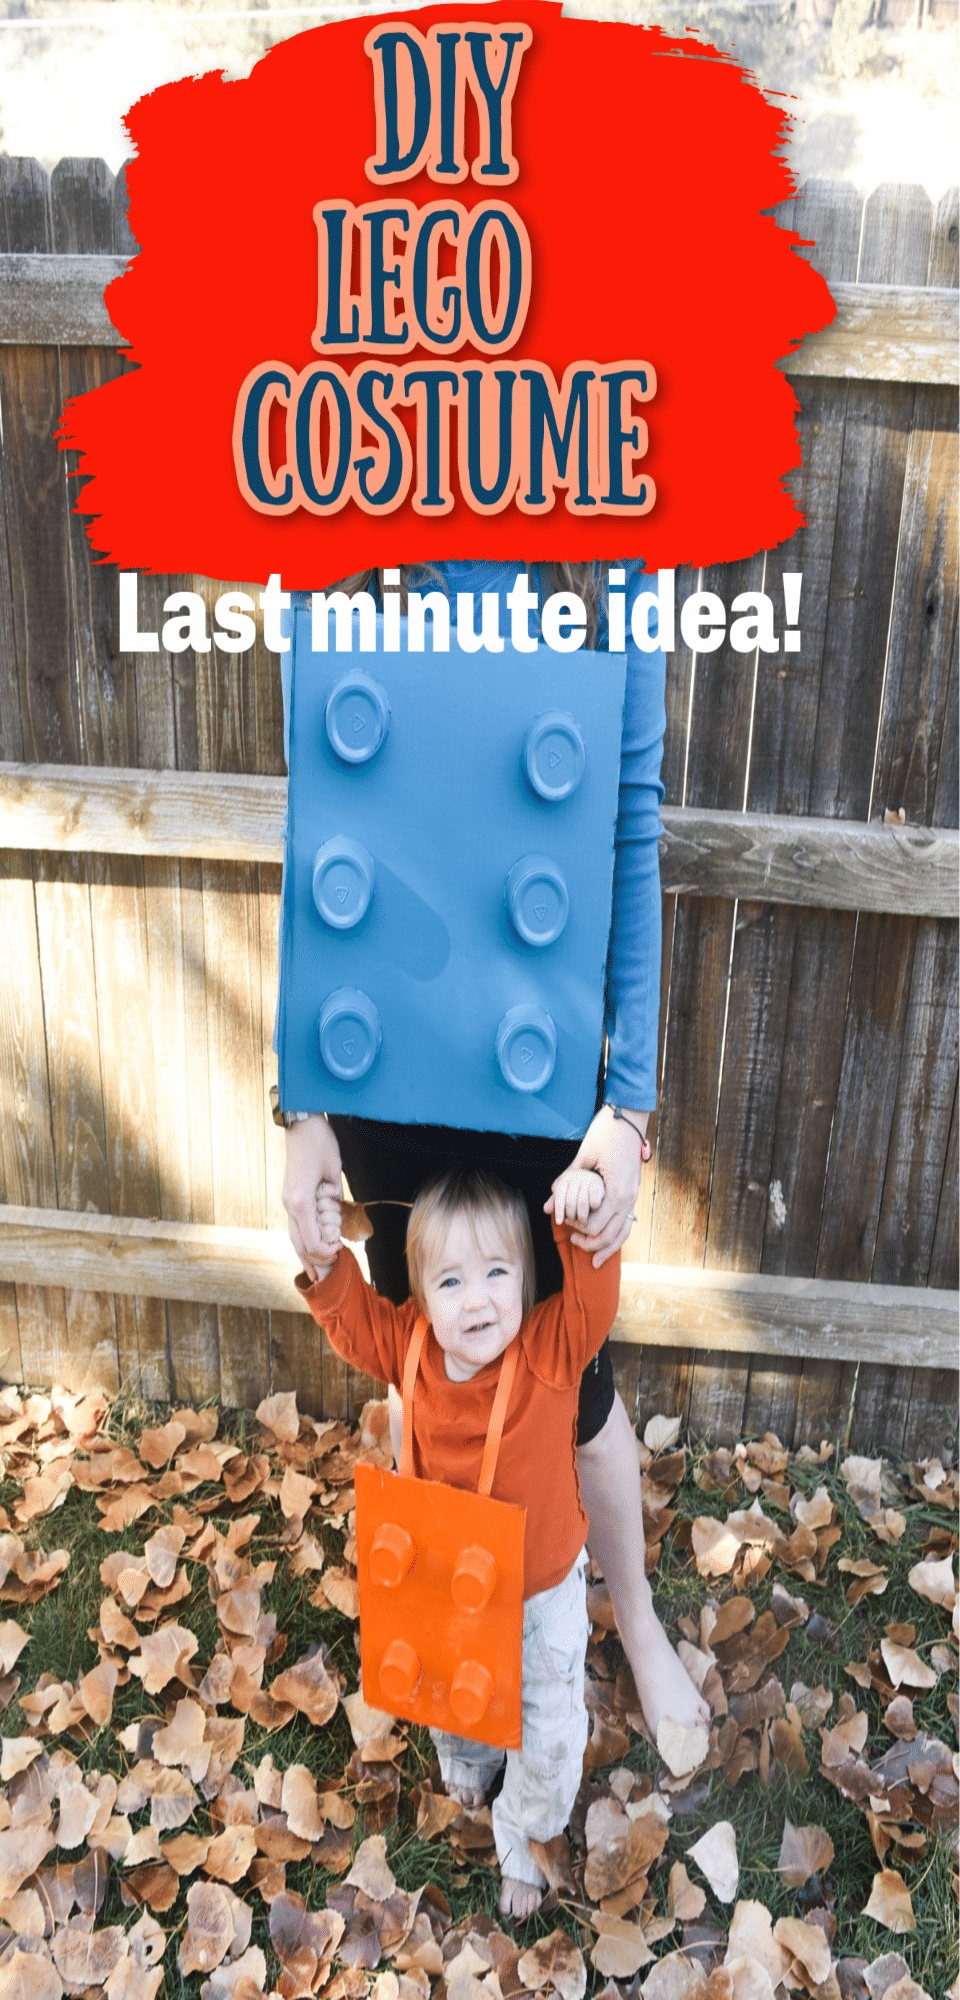 Make your own DIY LEGO costume with some cardboard, cups, and a little bit of spray paint. This is a great last minute costume idea - you probably have all the materials! via @clarkscondensed